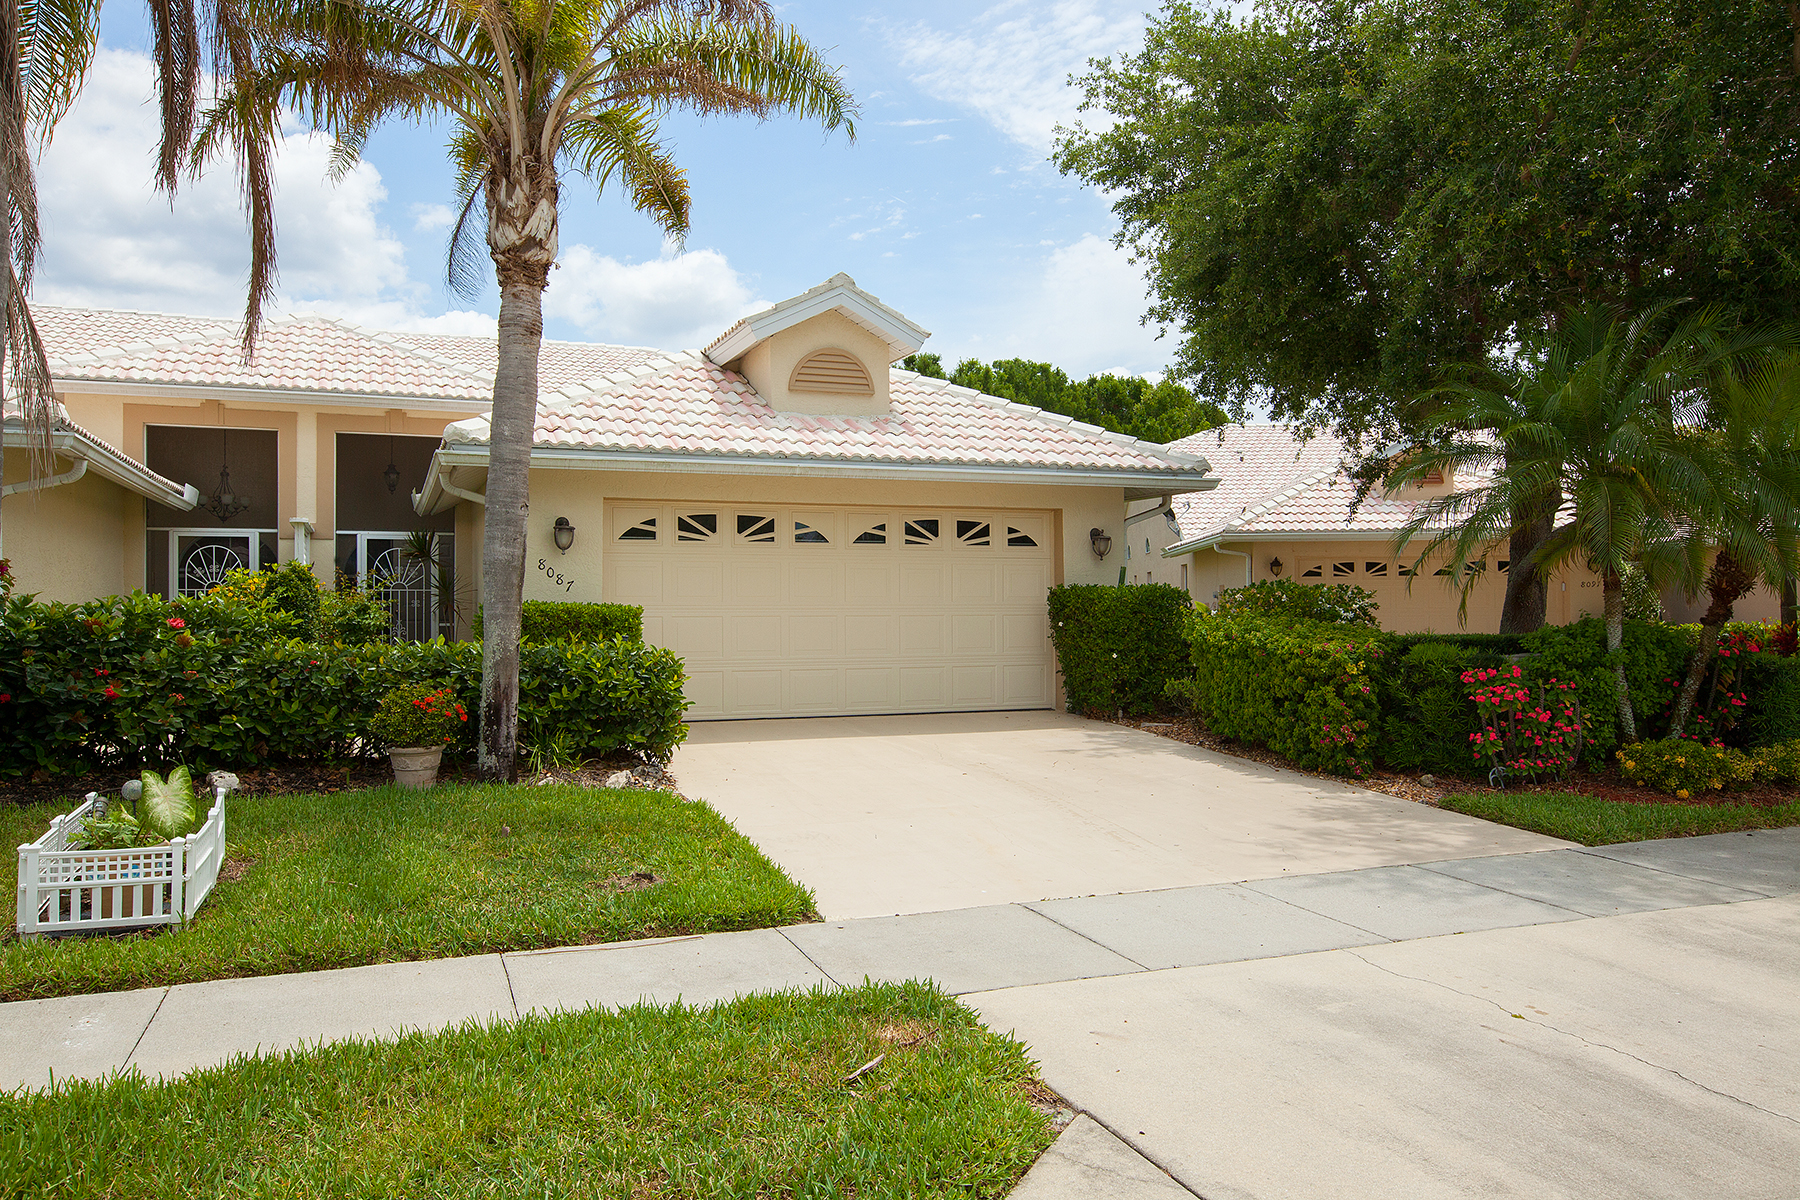 Townhouse for Sale at LELY RESORT - PALOMINO VILLAGE 8087 Palomino Dr 22 Naples, Florida, 34113 United States